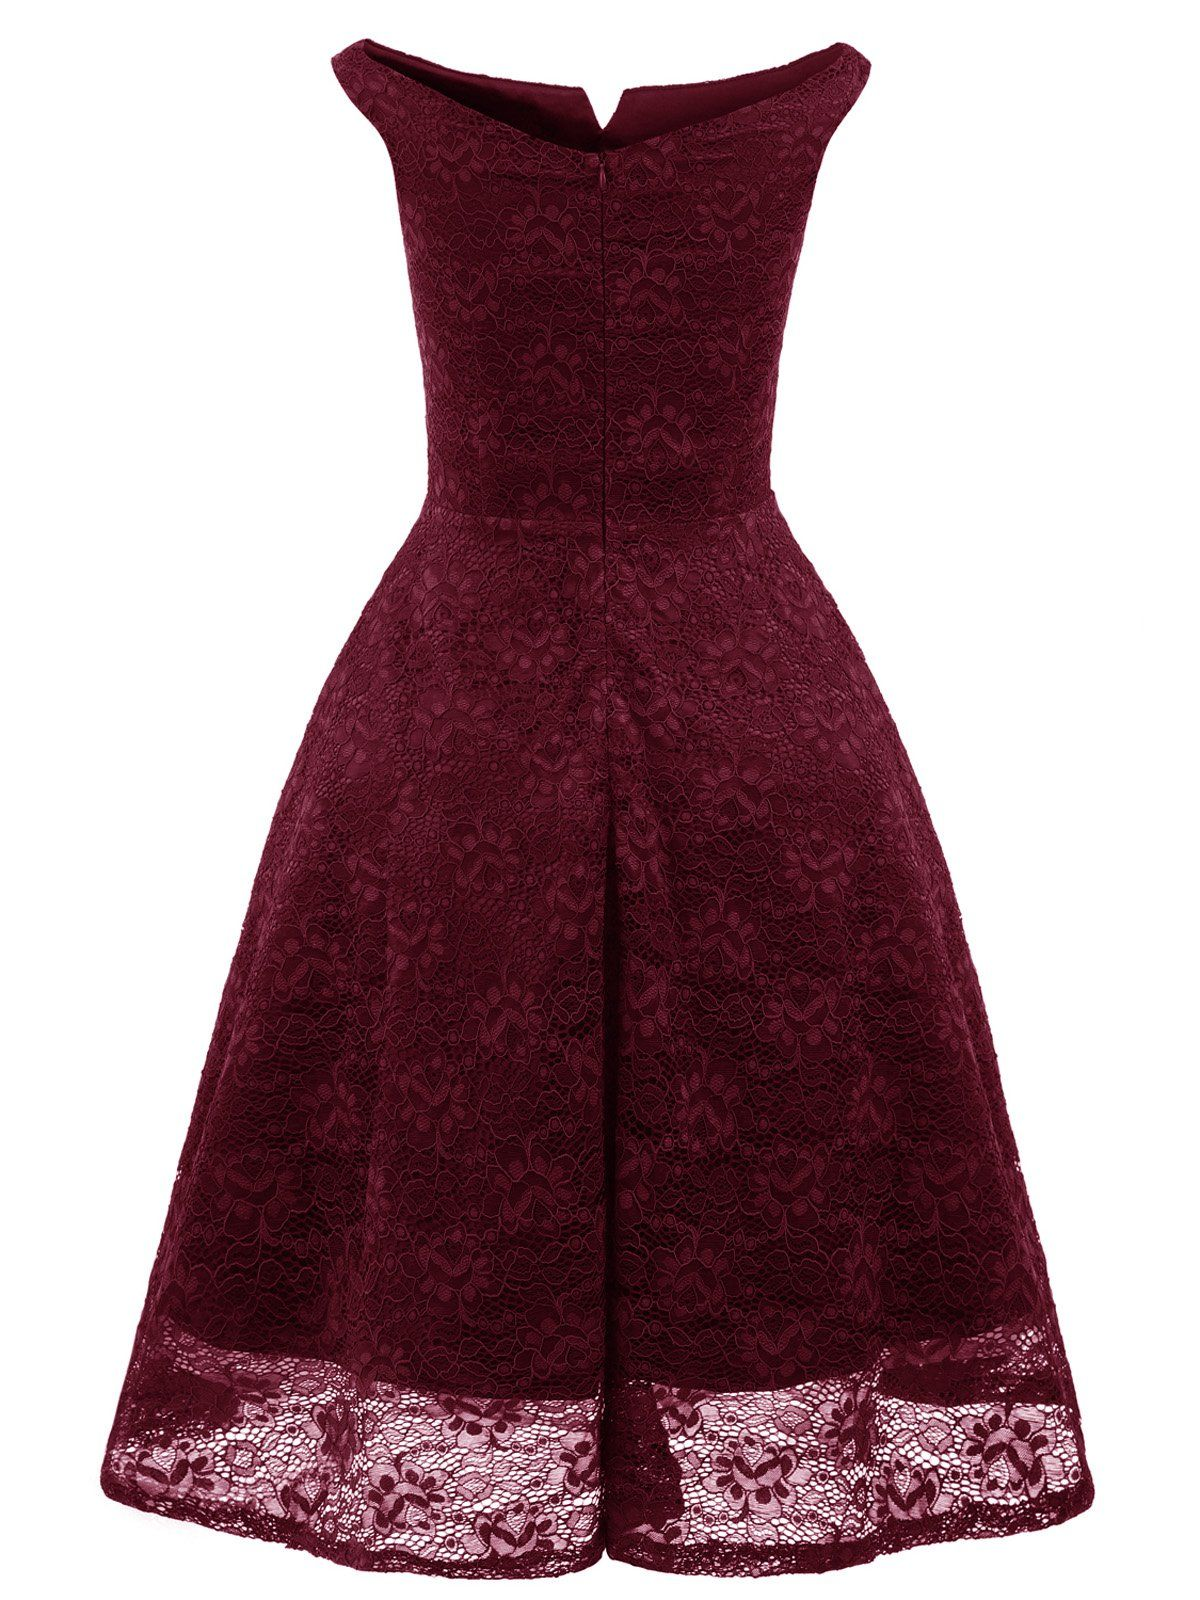 79d78e4a7cfa 1950s Lace Floral Swing Dress – Retro Stage - Chic Vintage Dresses and  Accessories